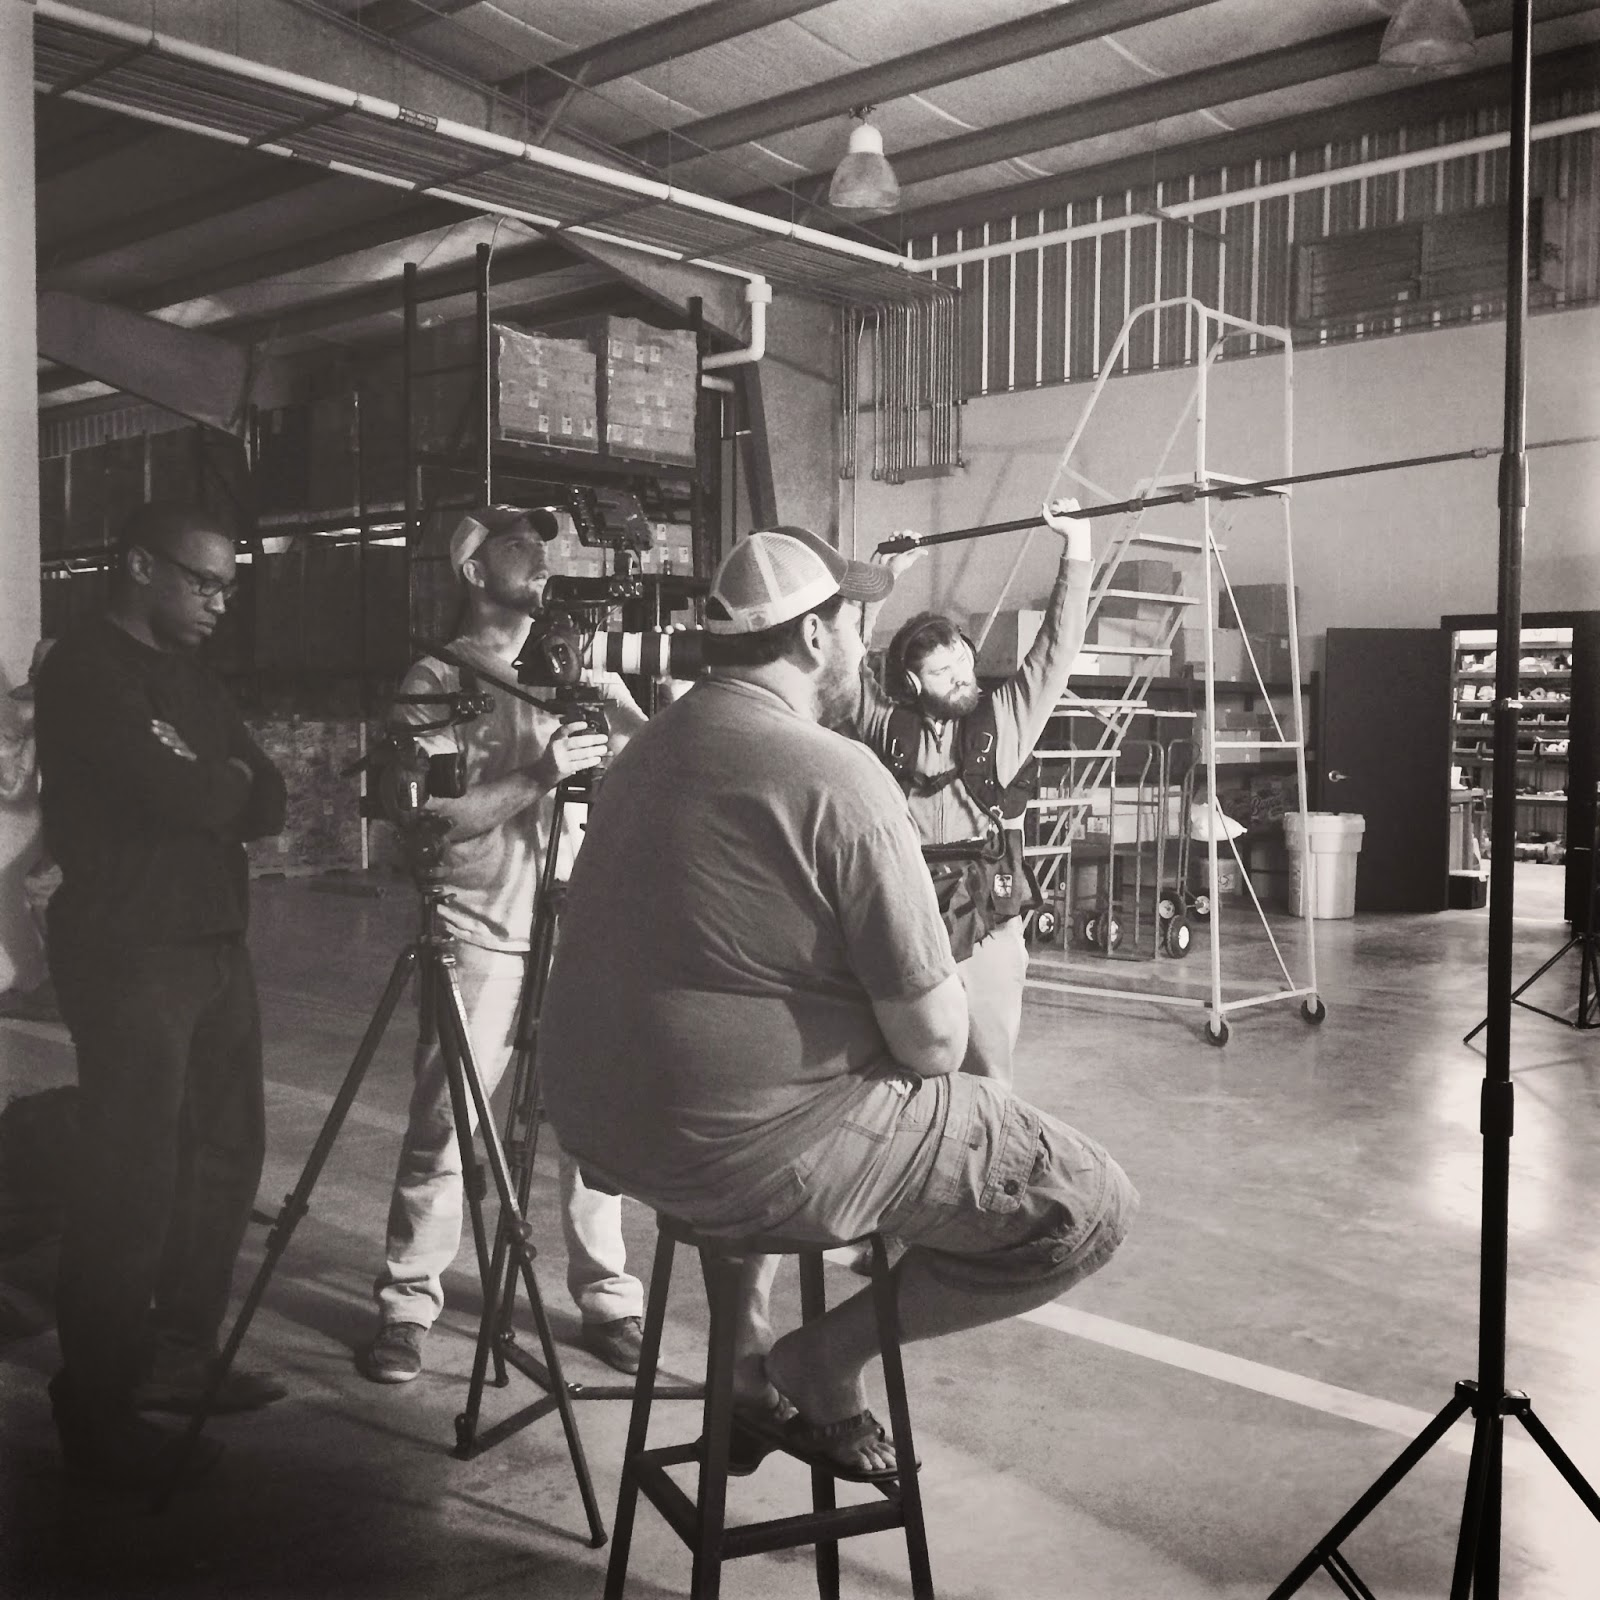 Dan Jones, Fred Mince, Jay Ducote, and Jordan Lewis getting footage at the Bayou Rum distillery